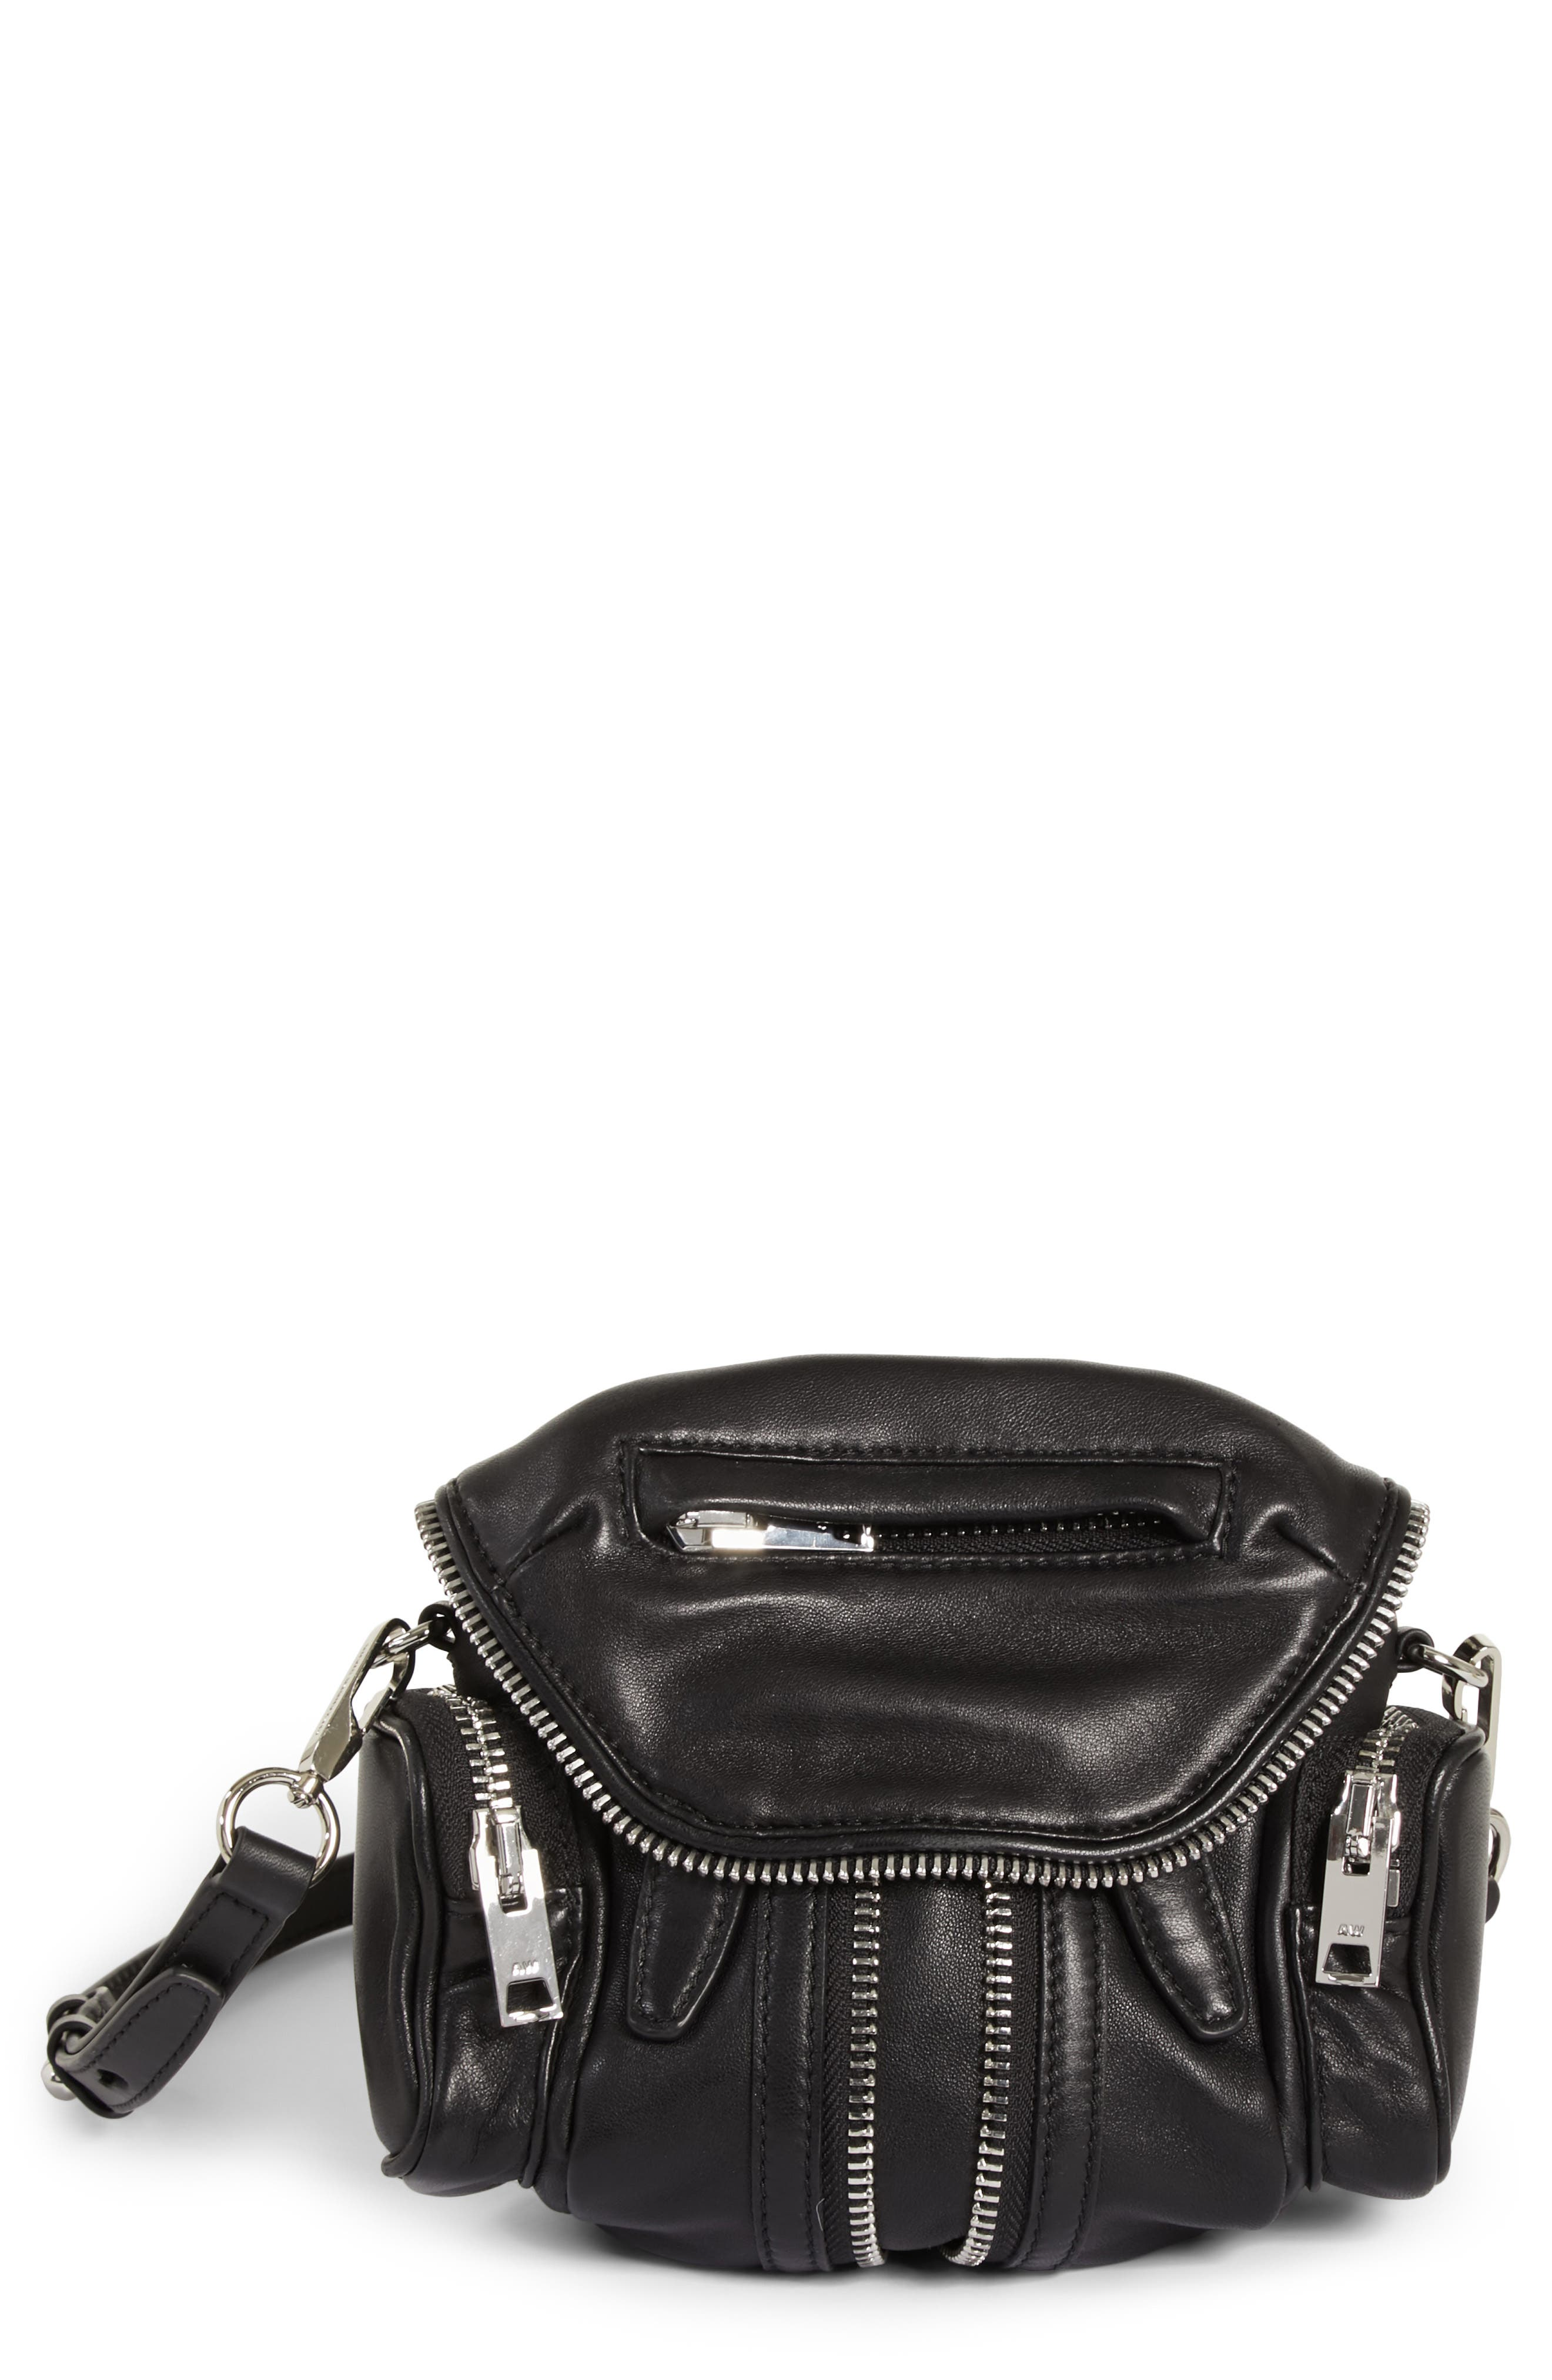 ALEXANDER WANG, Mini Marti Leather Crossbody Bag, Main thumbnail 1, color, BLACK